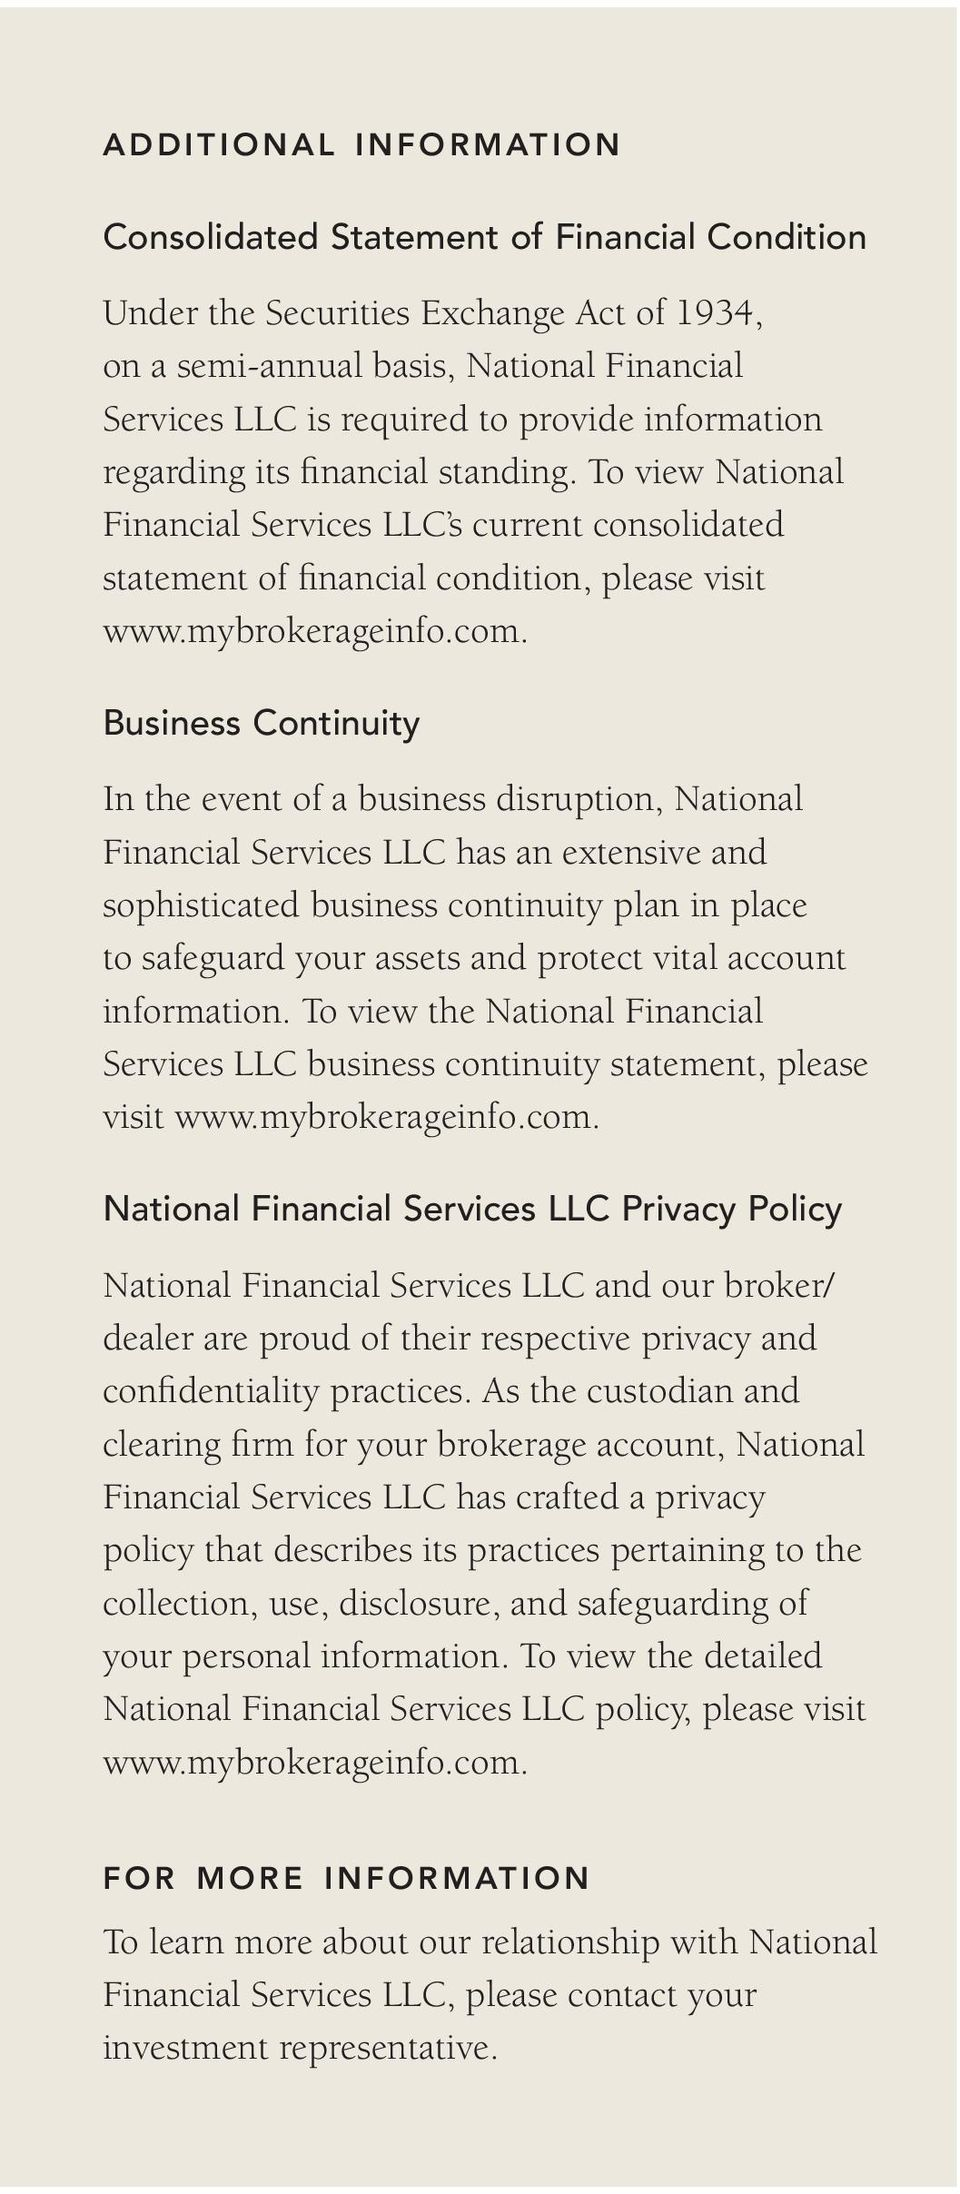 Business Continuity In the event of a business disruption, National Financial Services LLC has an extensive and sophisticated business continuity plan in place to safeguard your assets and protect